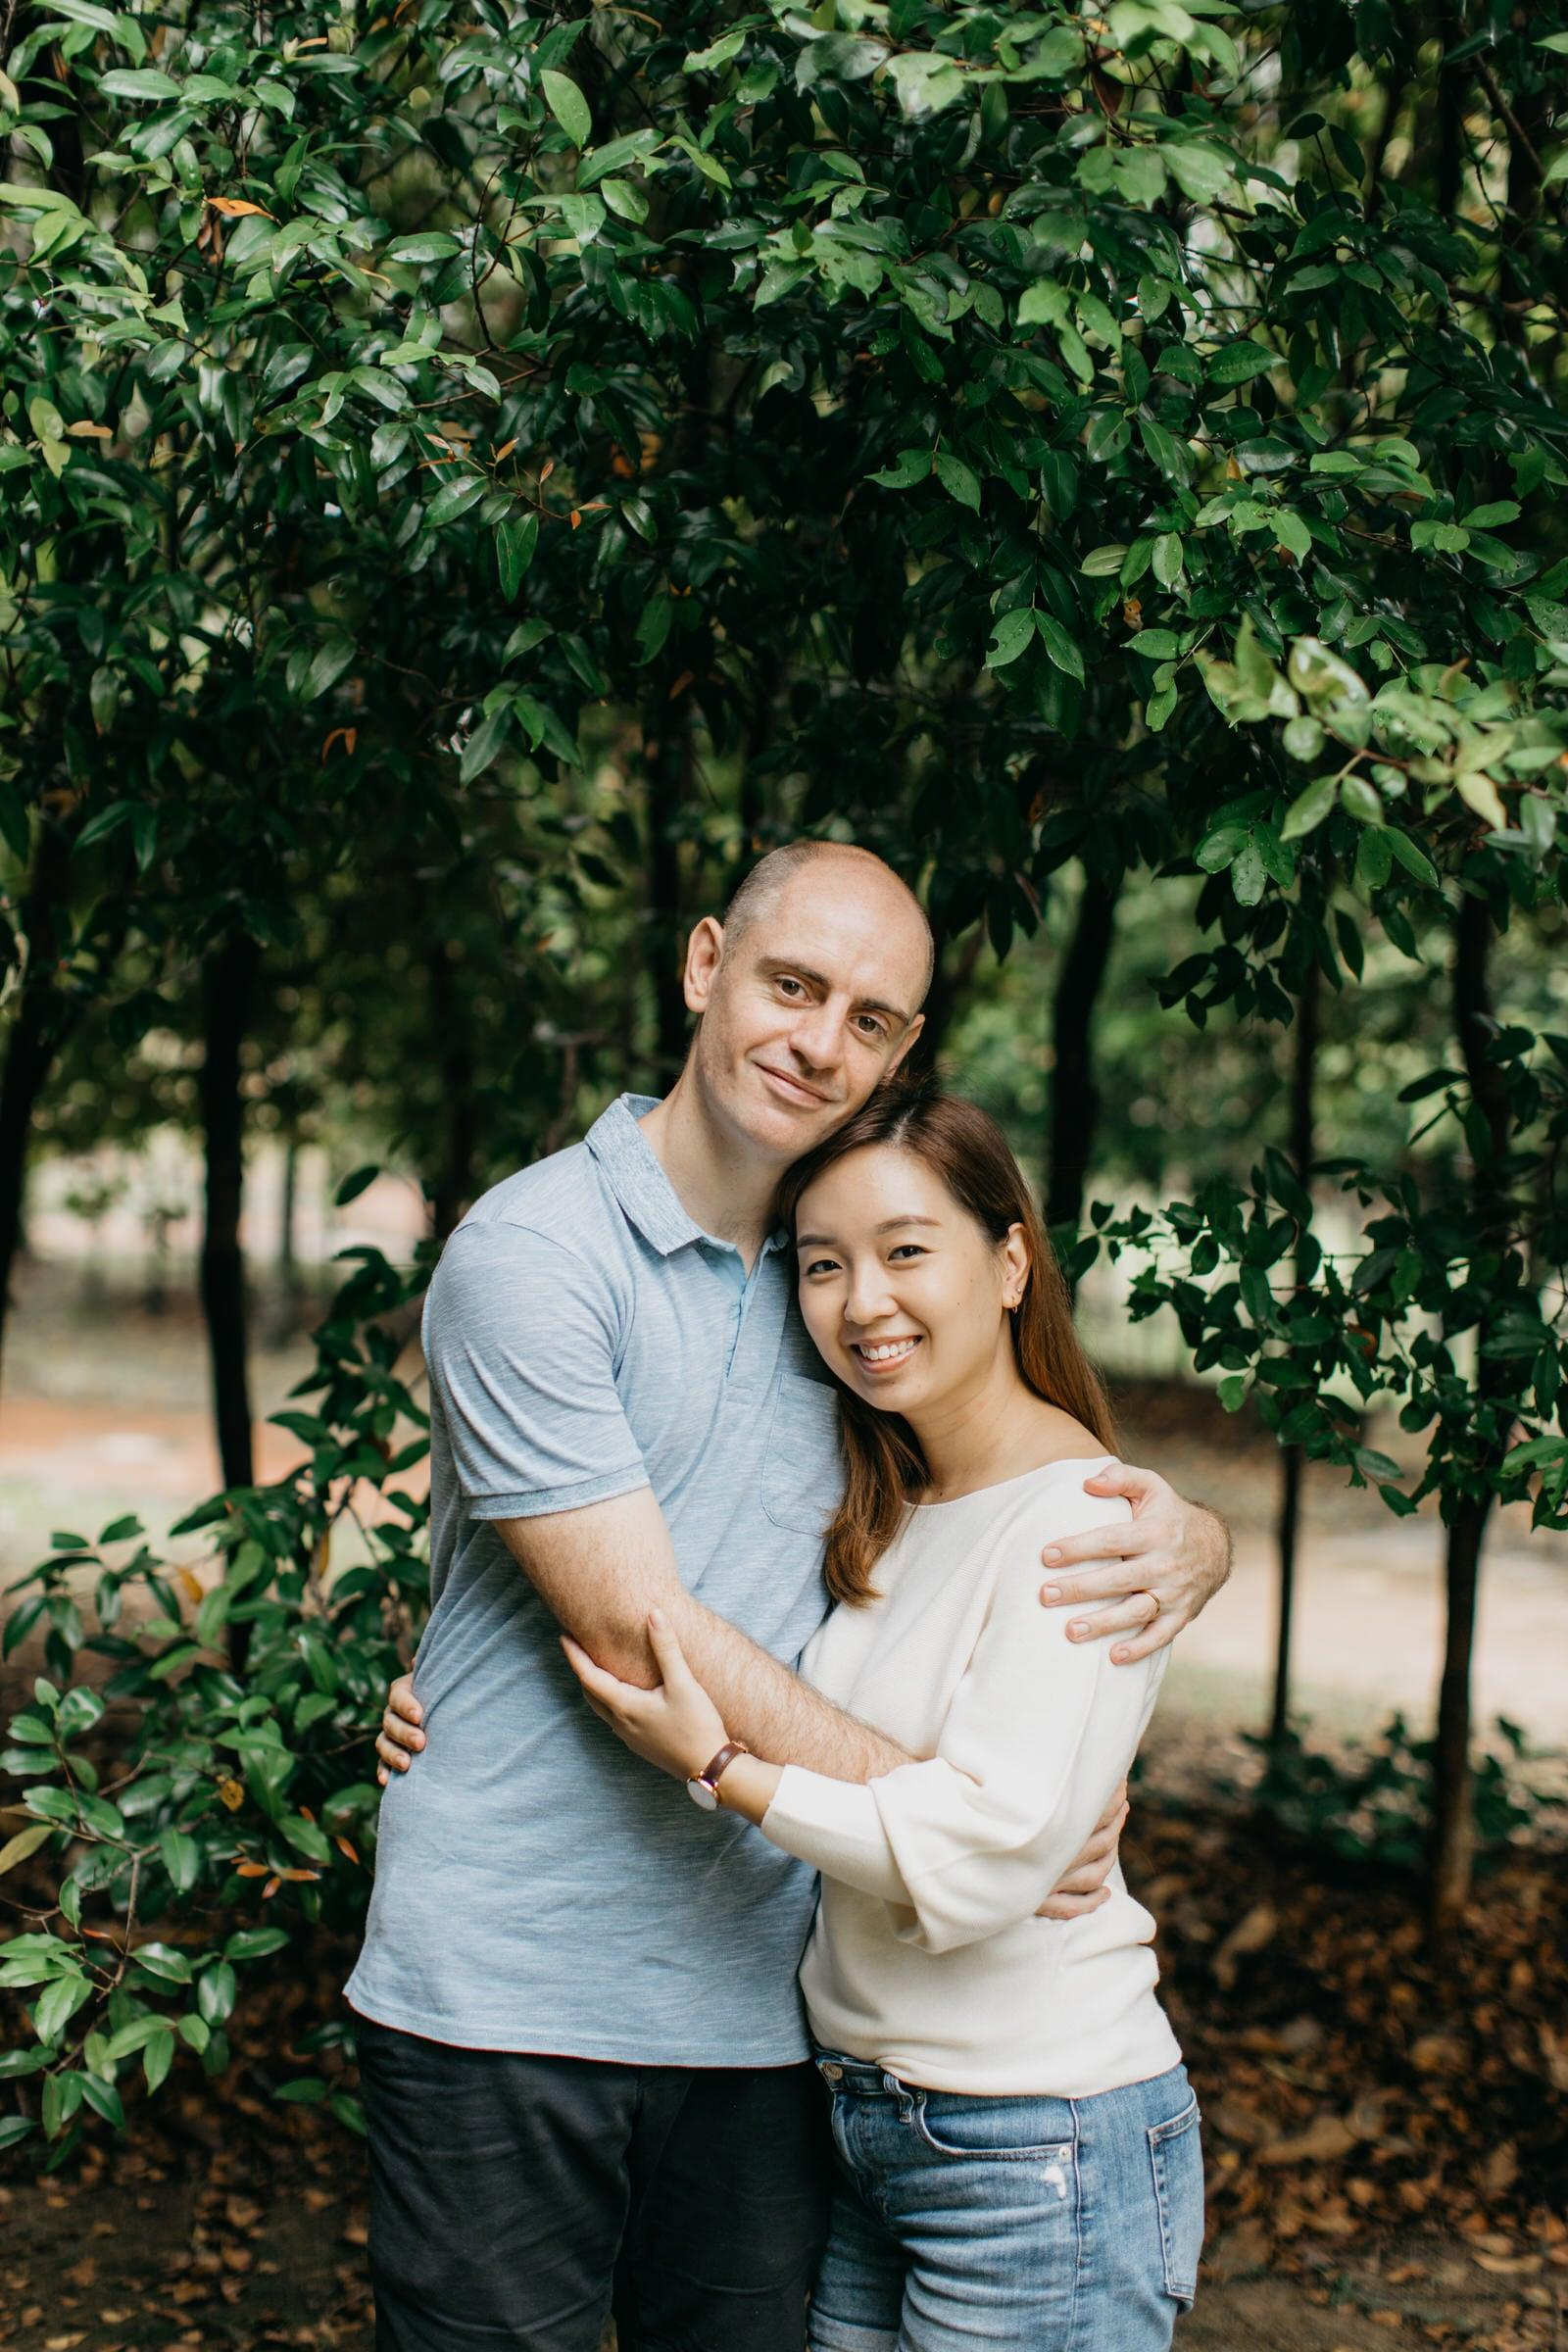 lovely couple Damansar Tropical Family Portrait Session in Kuala Lumpur Malaysia